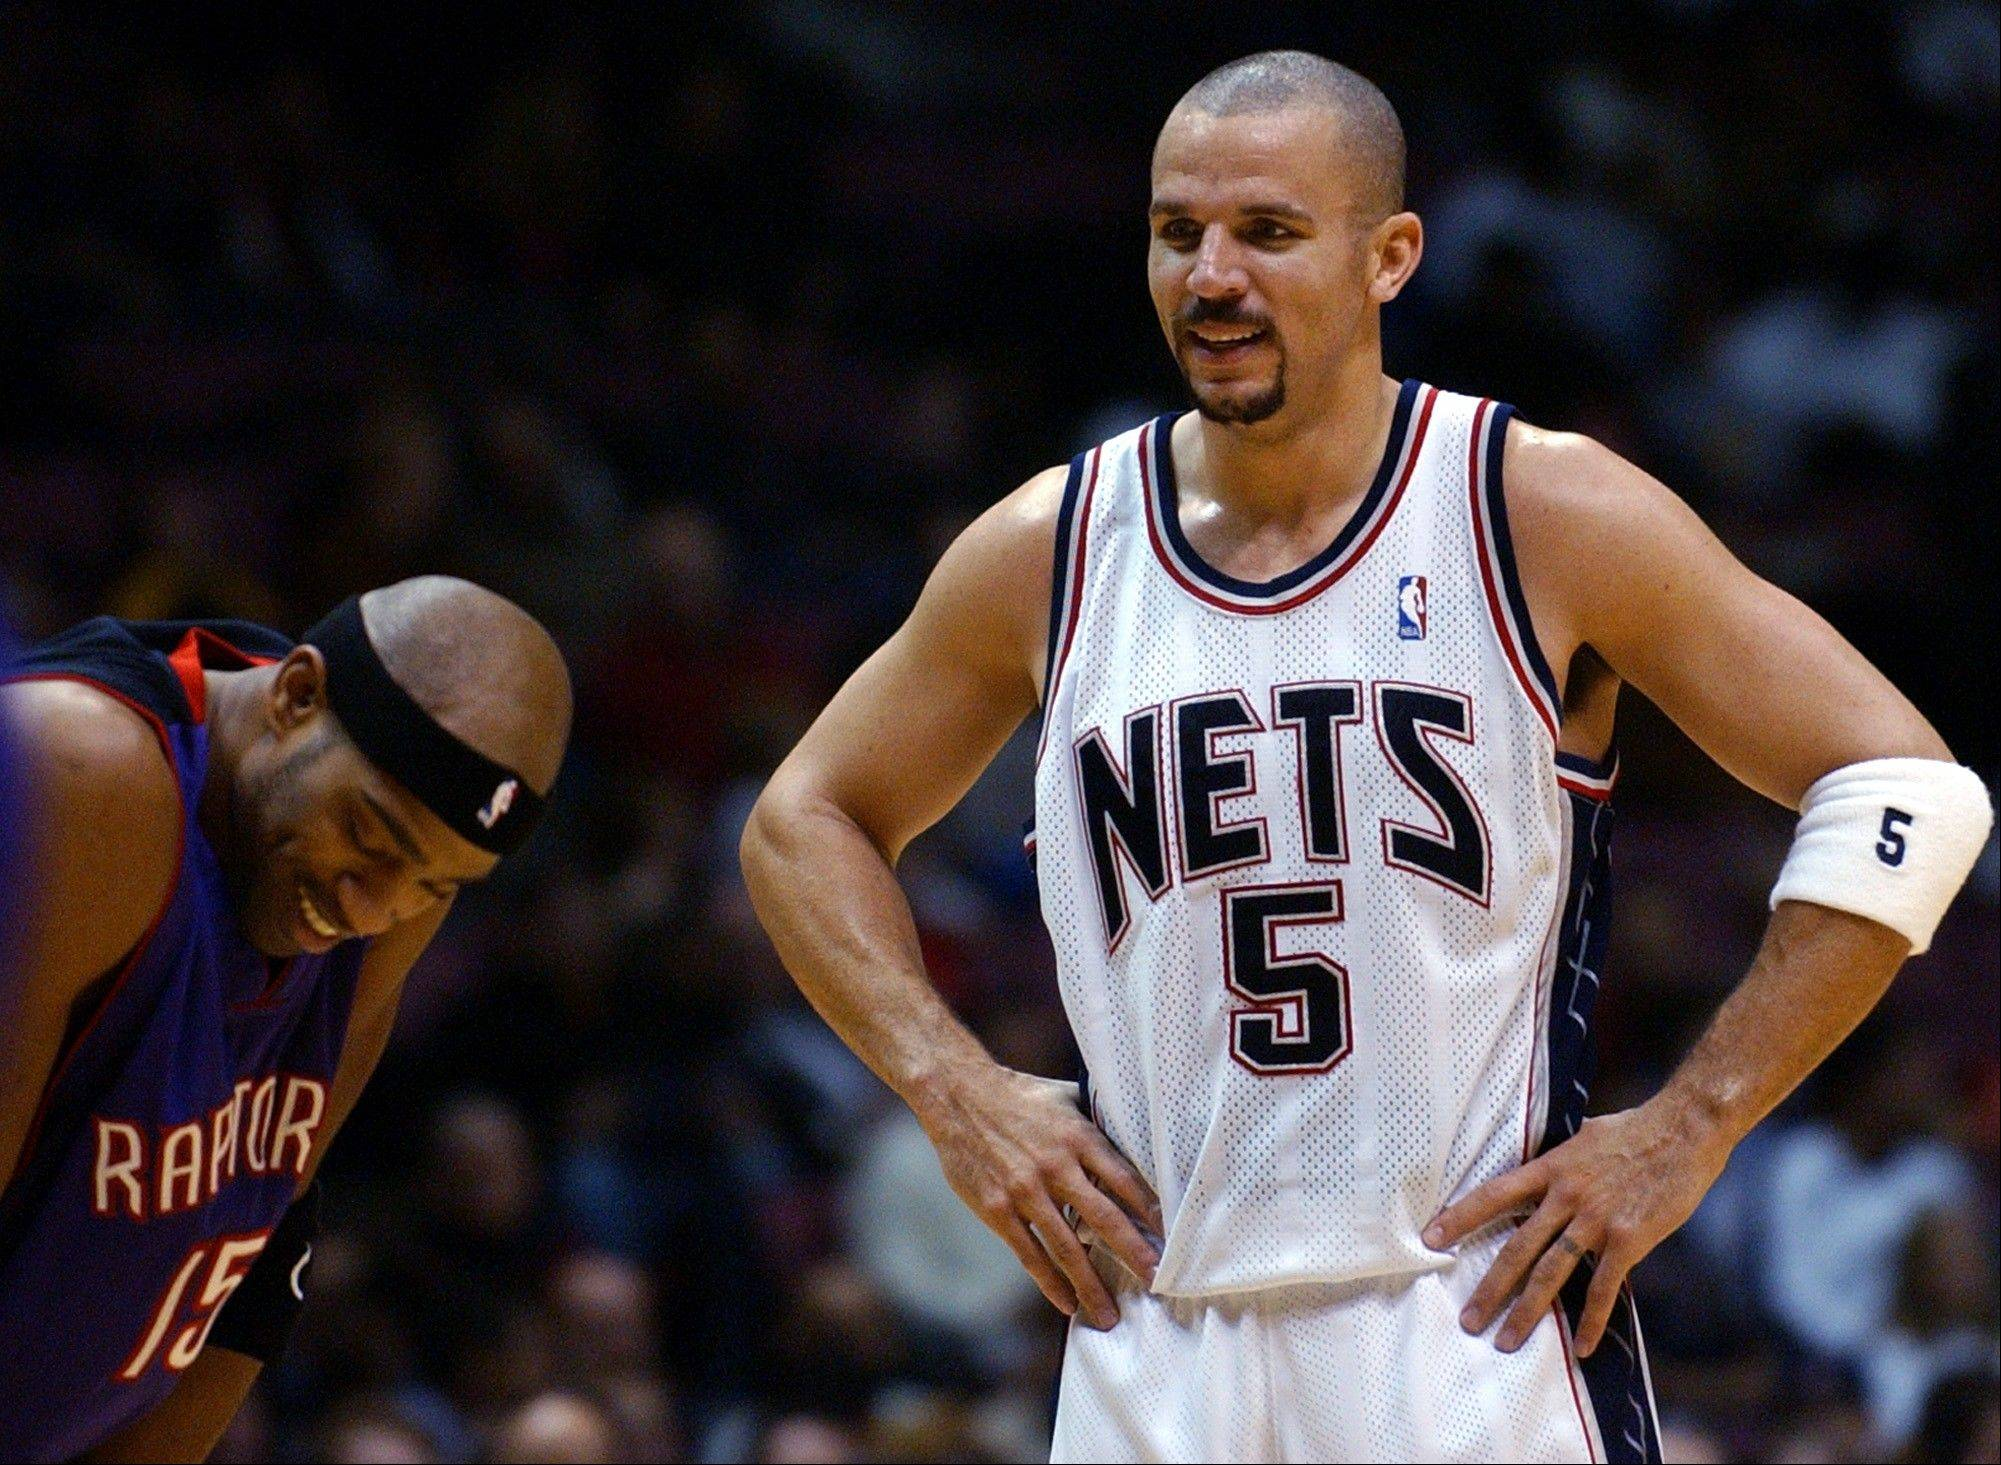 The New York Knicks say Jason Kidd has decided to retire from the NBA after 19 seasons. His retirement Monday comes two days after fellow 40-year-old Grant Hill, with whom Kidd shared Rookie of the Year honors in 1995, announced his retirement.